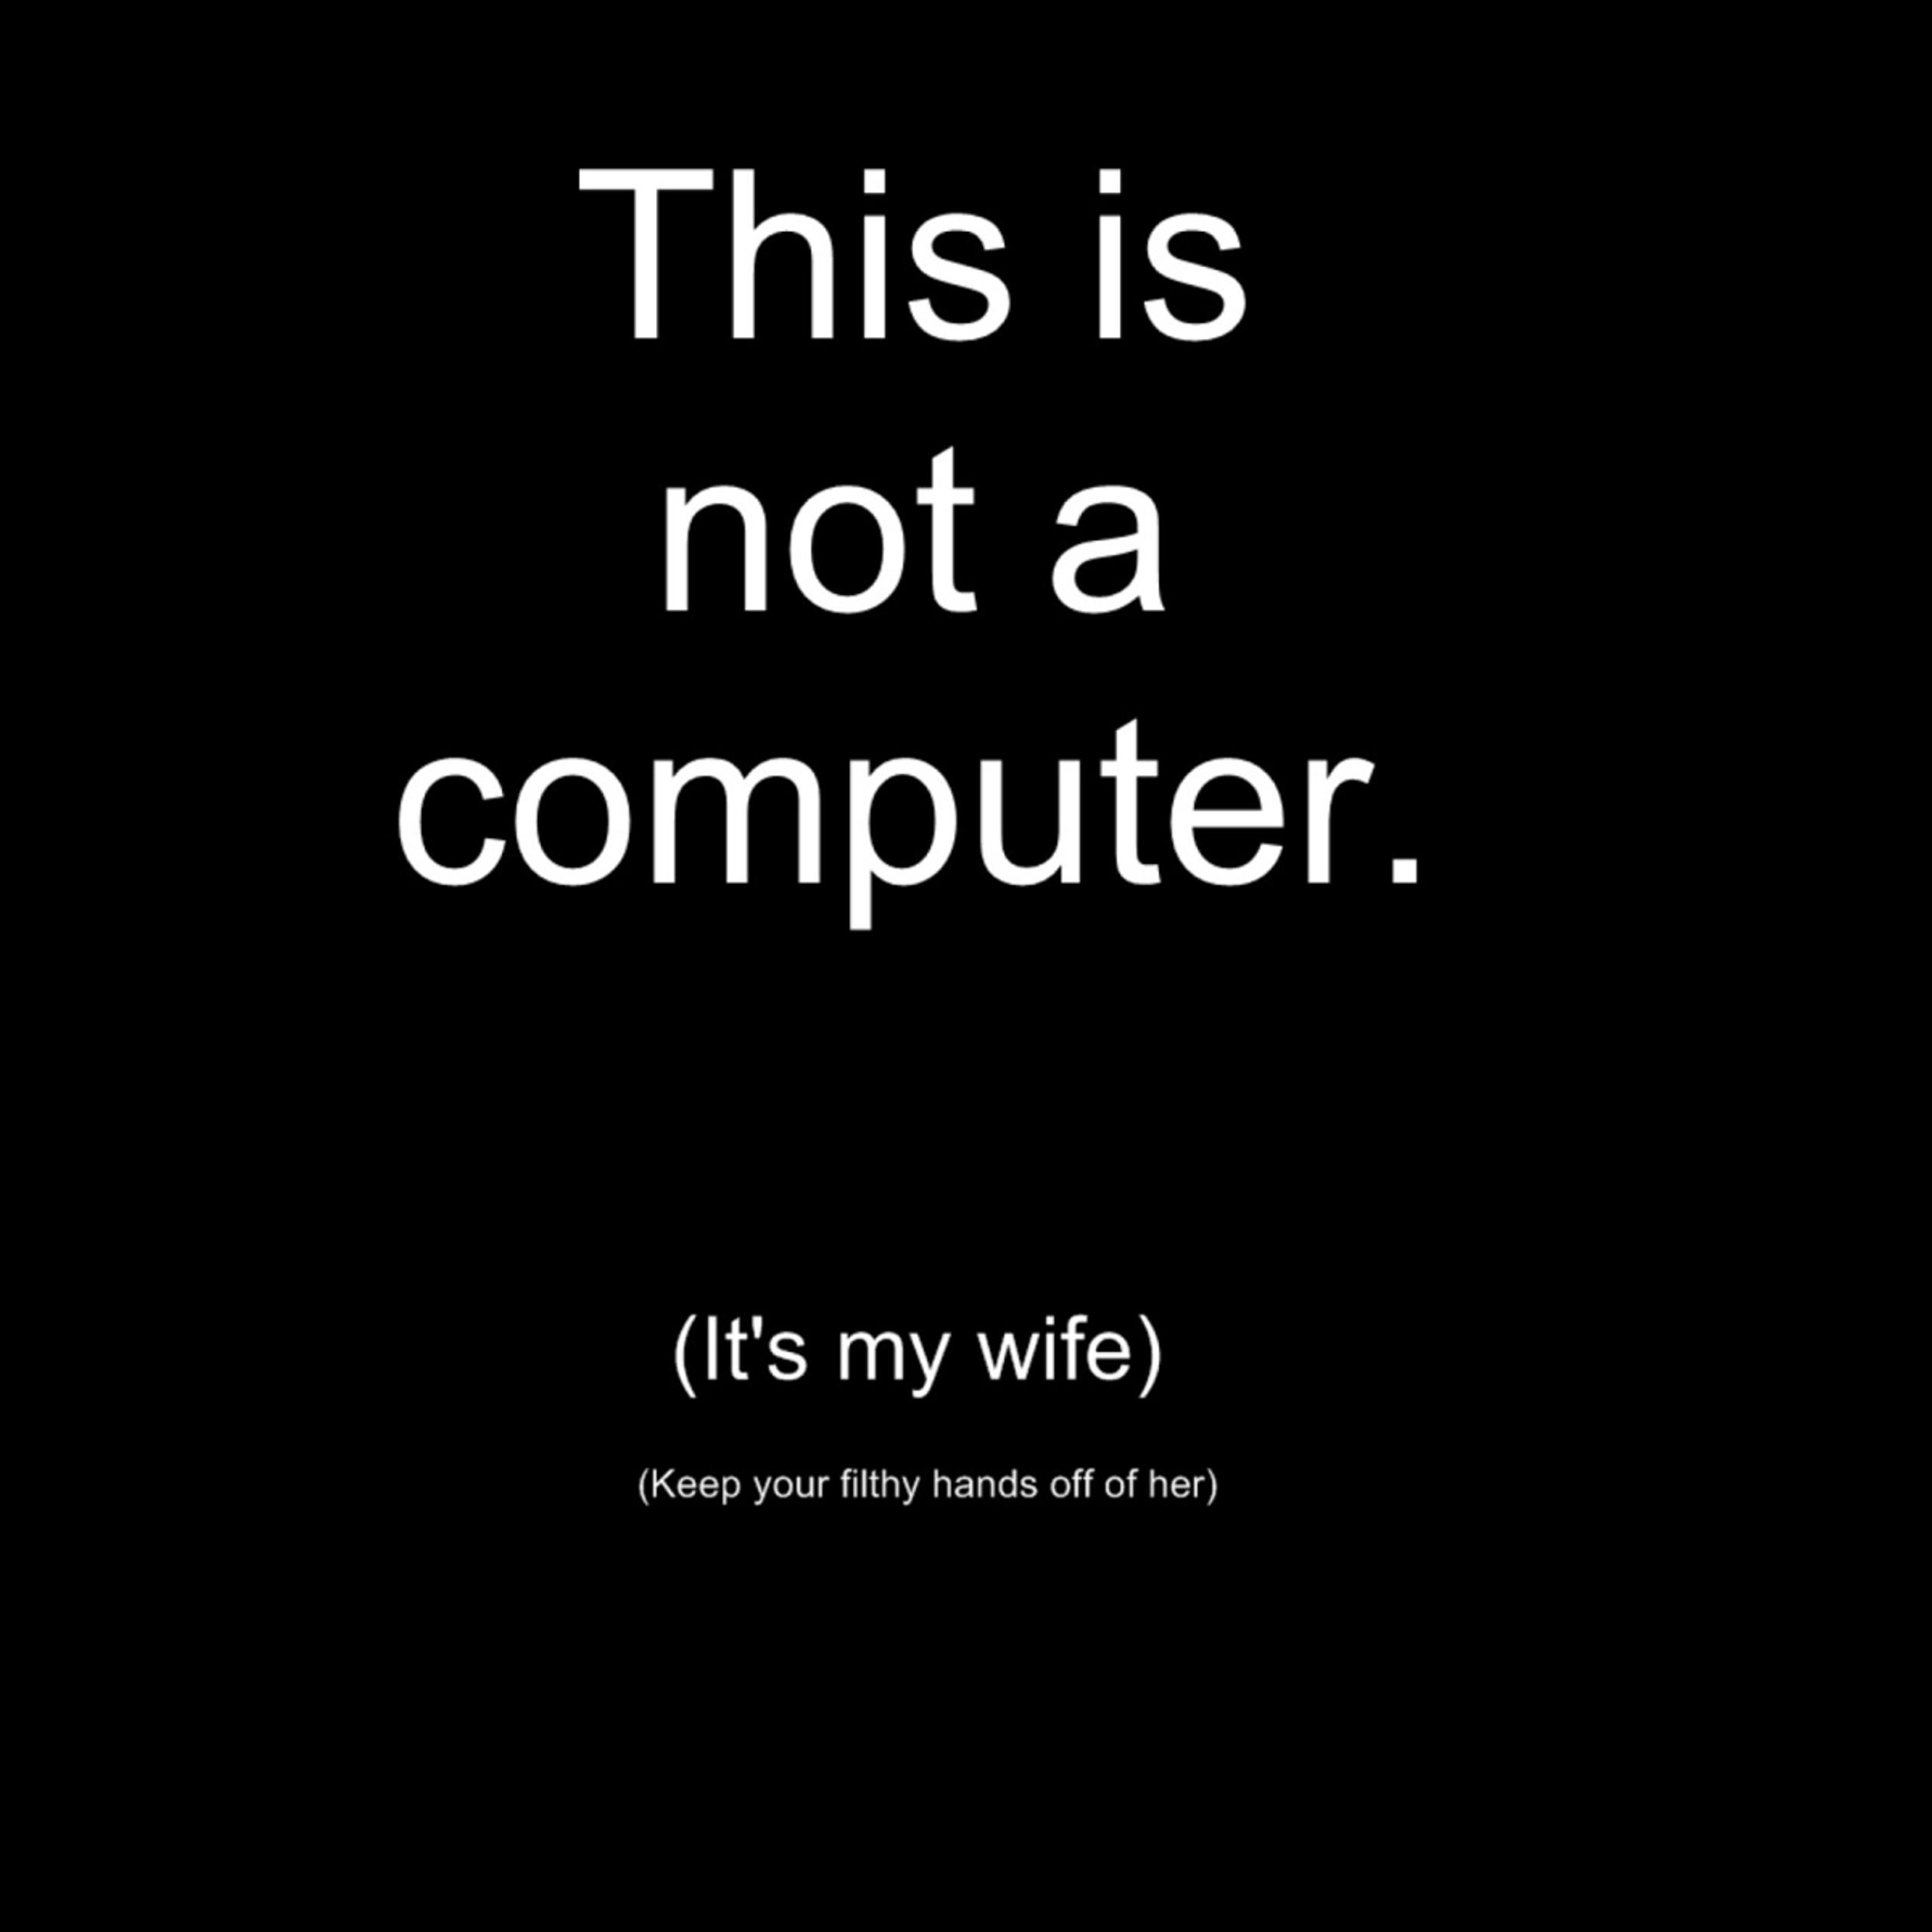 Best Funny Quotes For Him Download Best Quotes Funny: Funny Message About Wife And Computers Wallpaper Download